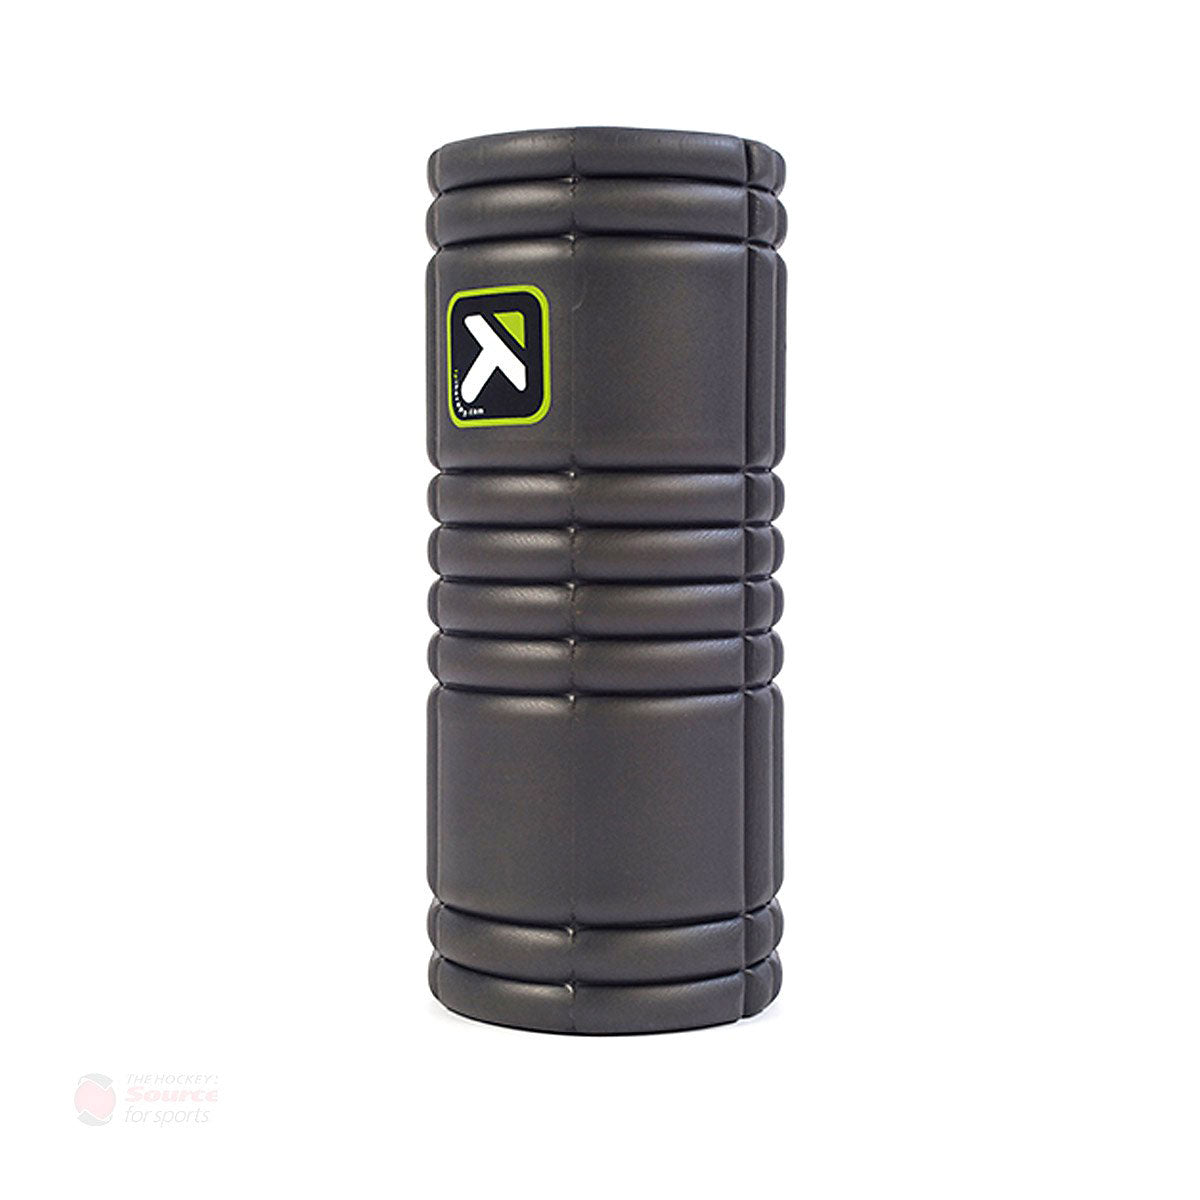 360 Athletics Grid Foam Roller - Black